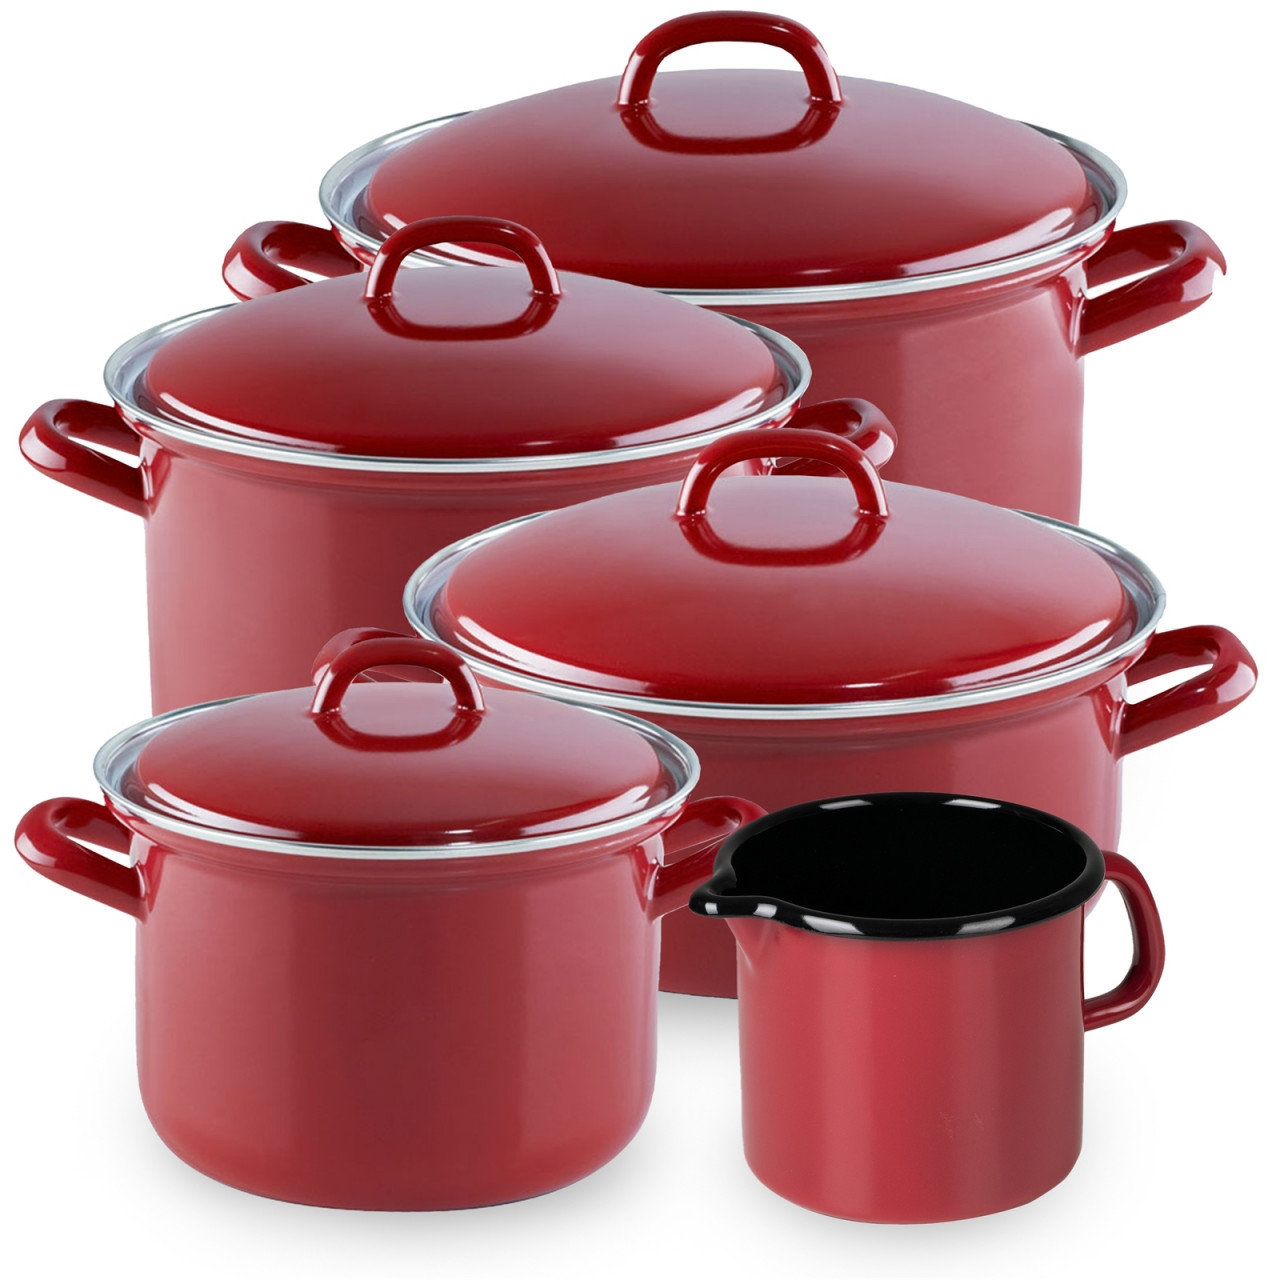 Riess Topfset 5-teilig RED